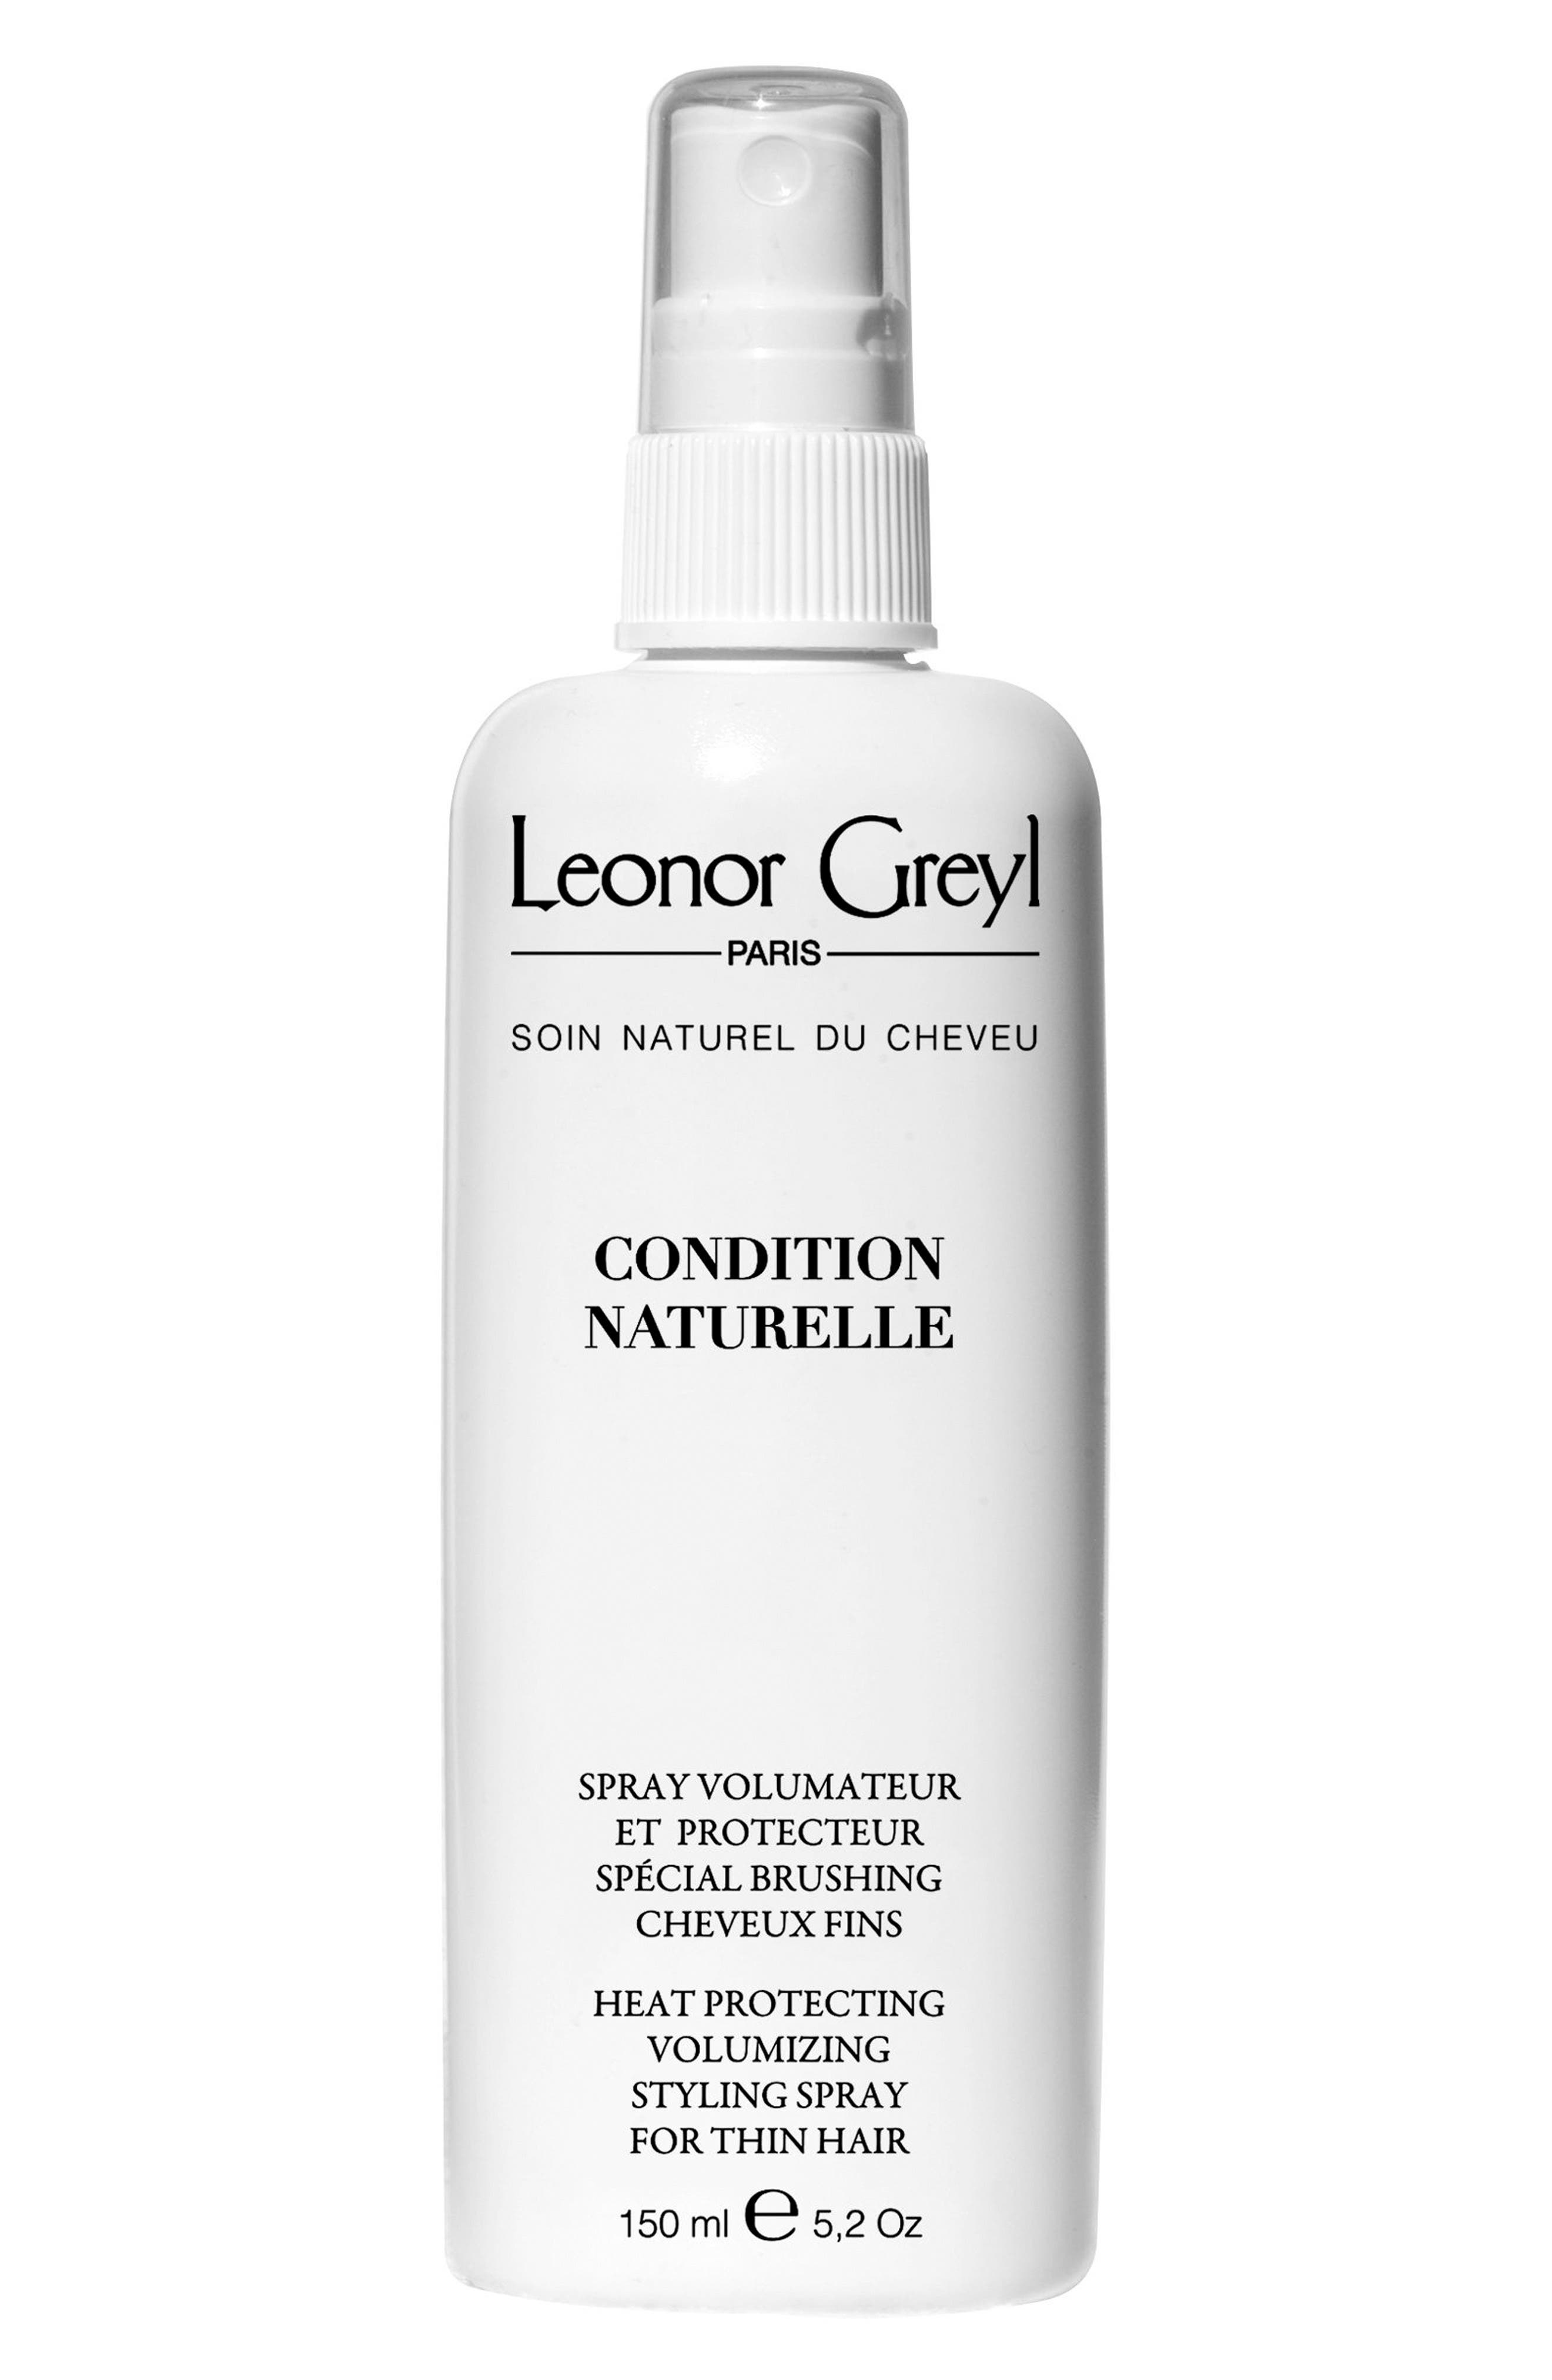 Alternate Image 1 Selected - Leonor Greyl PARIS 'Condition Naturelle' Heat Protective Styling Spray for Thin Hair